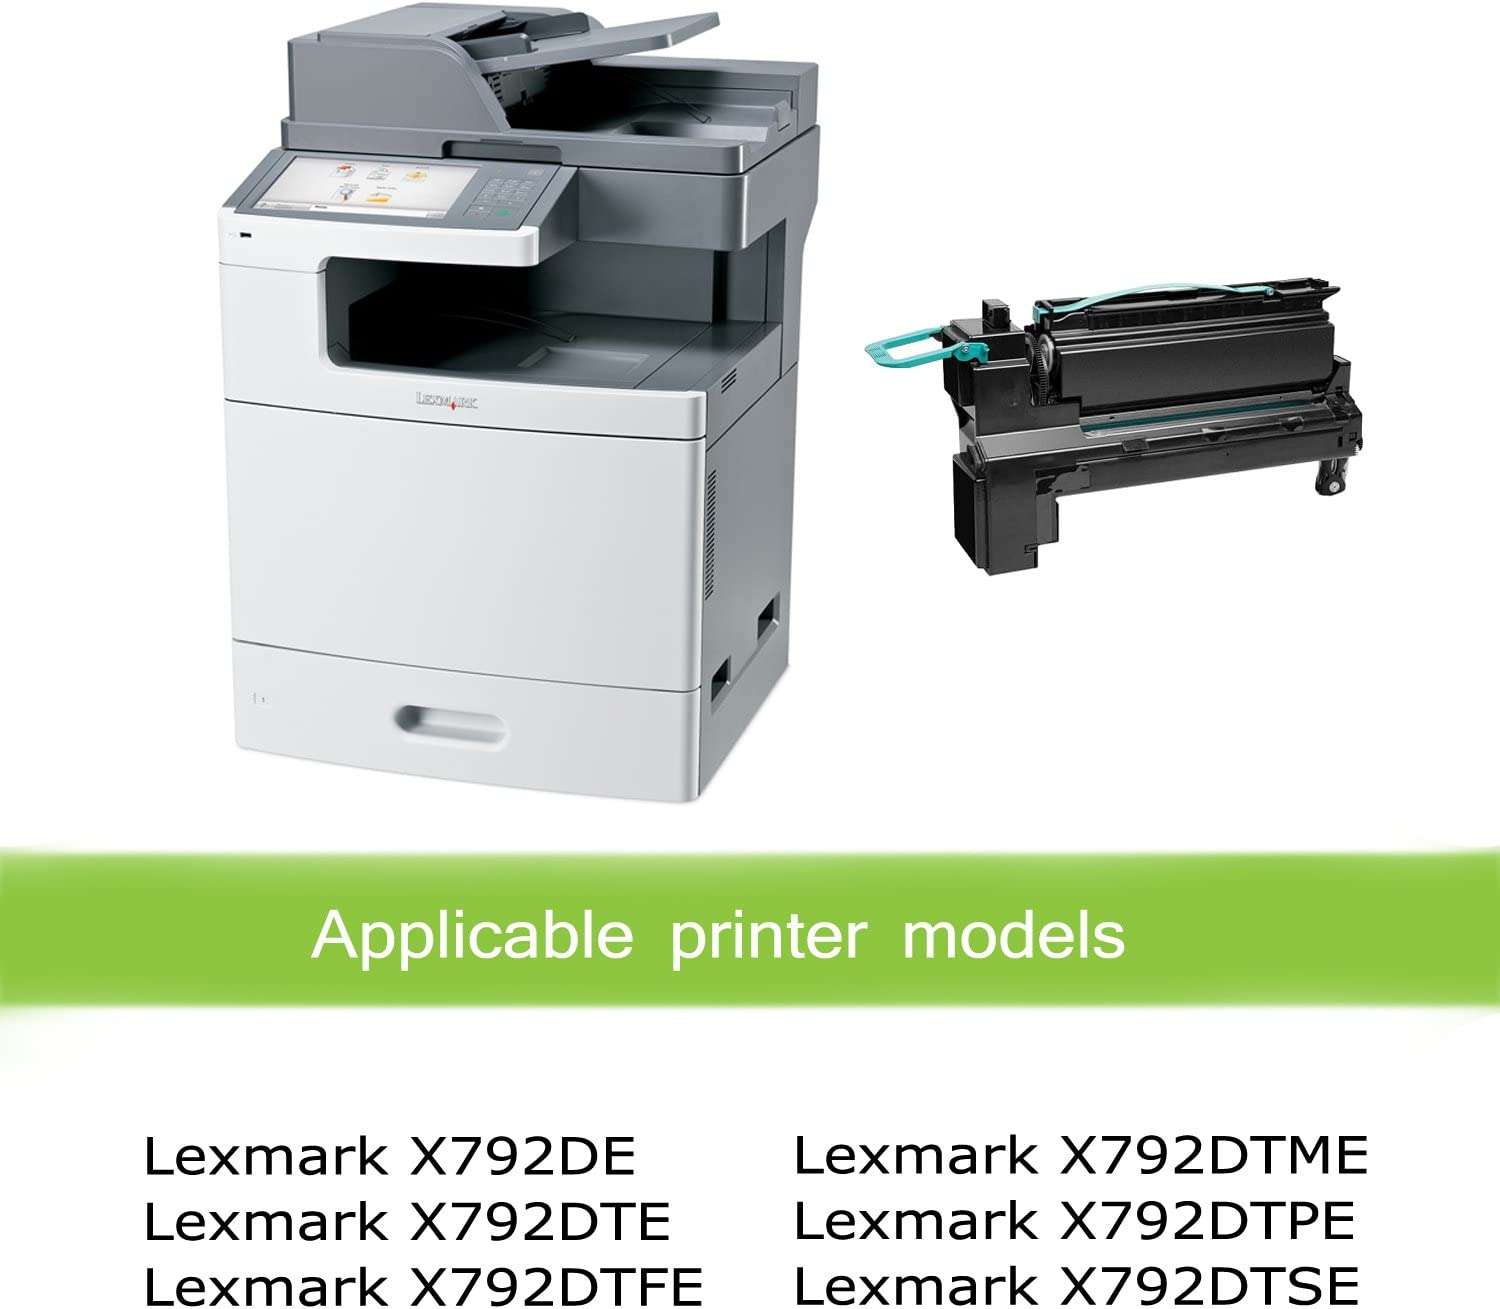 MS-410 MS-312 MS-610 MS-415 Awesometoner/ Remanufactured/ Made in USA Toner/ Cartridge/ Replacement/ for/ Lexmark 50F1000 50F000G 500 500G 501 MU310 use/ with/ MS-310 Black, 5-Pack MS-510 MS-315